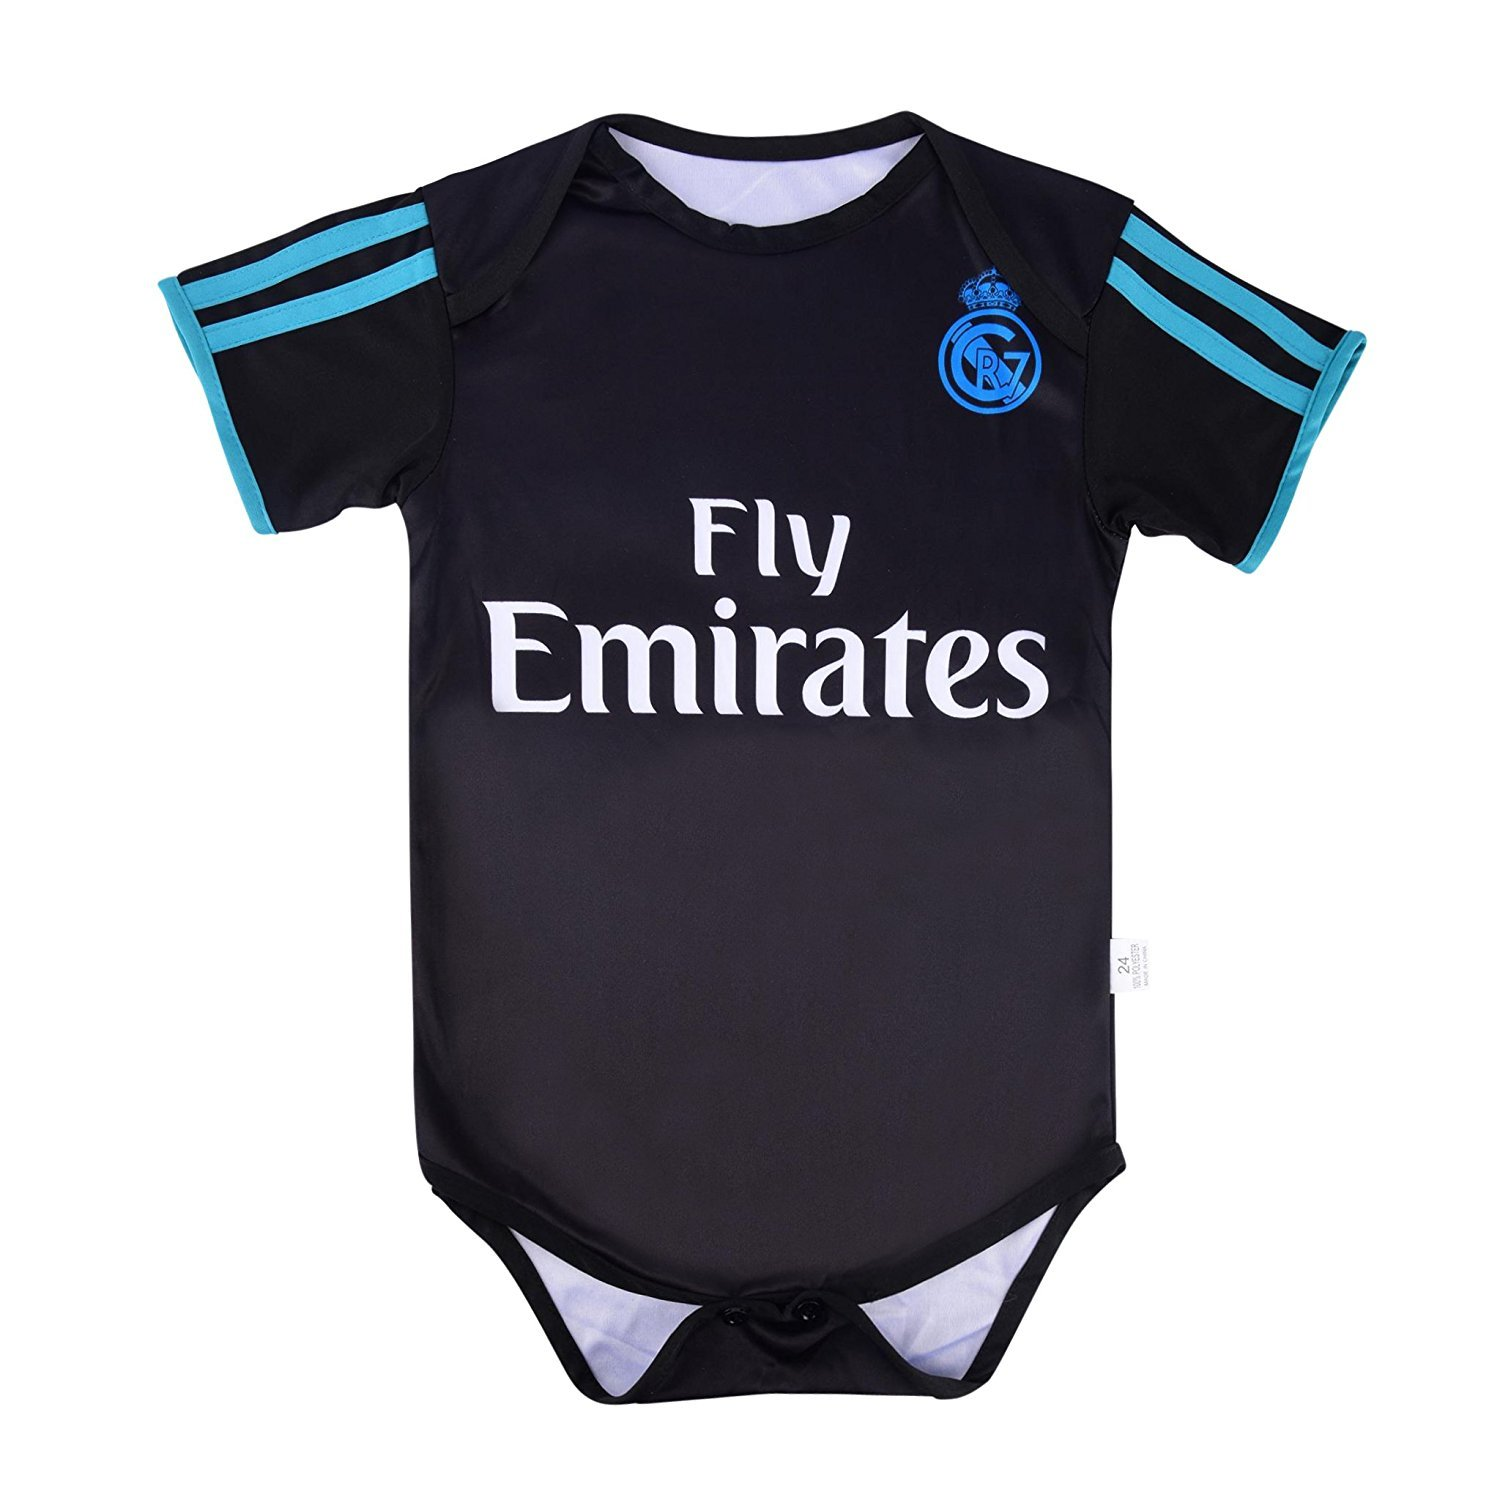 World Cup Baby Cristiano Ronaldo  7 Real Madrid Soccer Jersey Baby Infant  and... Product Details 81c20e12a